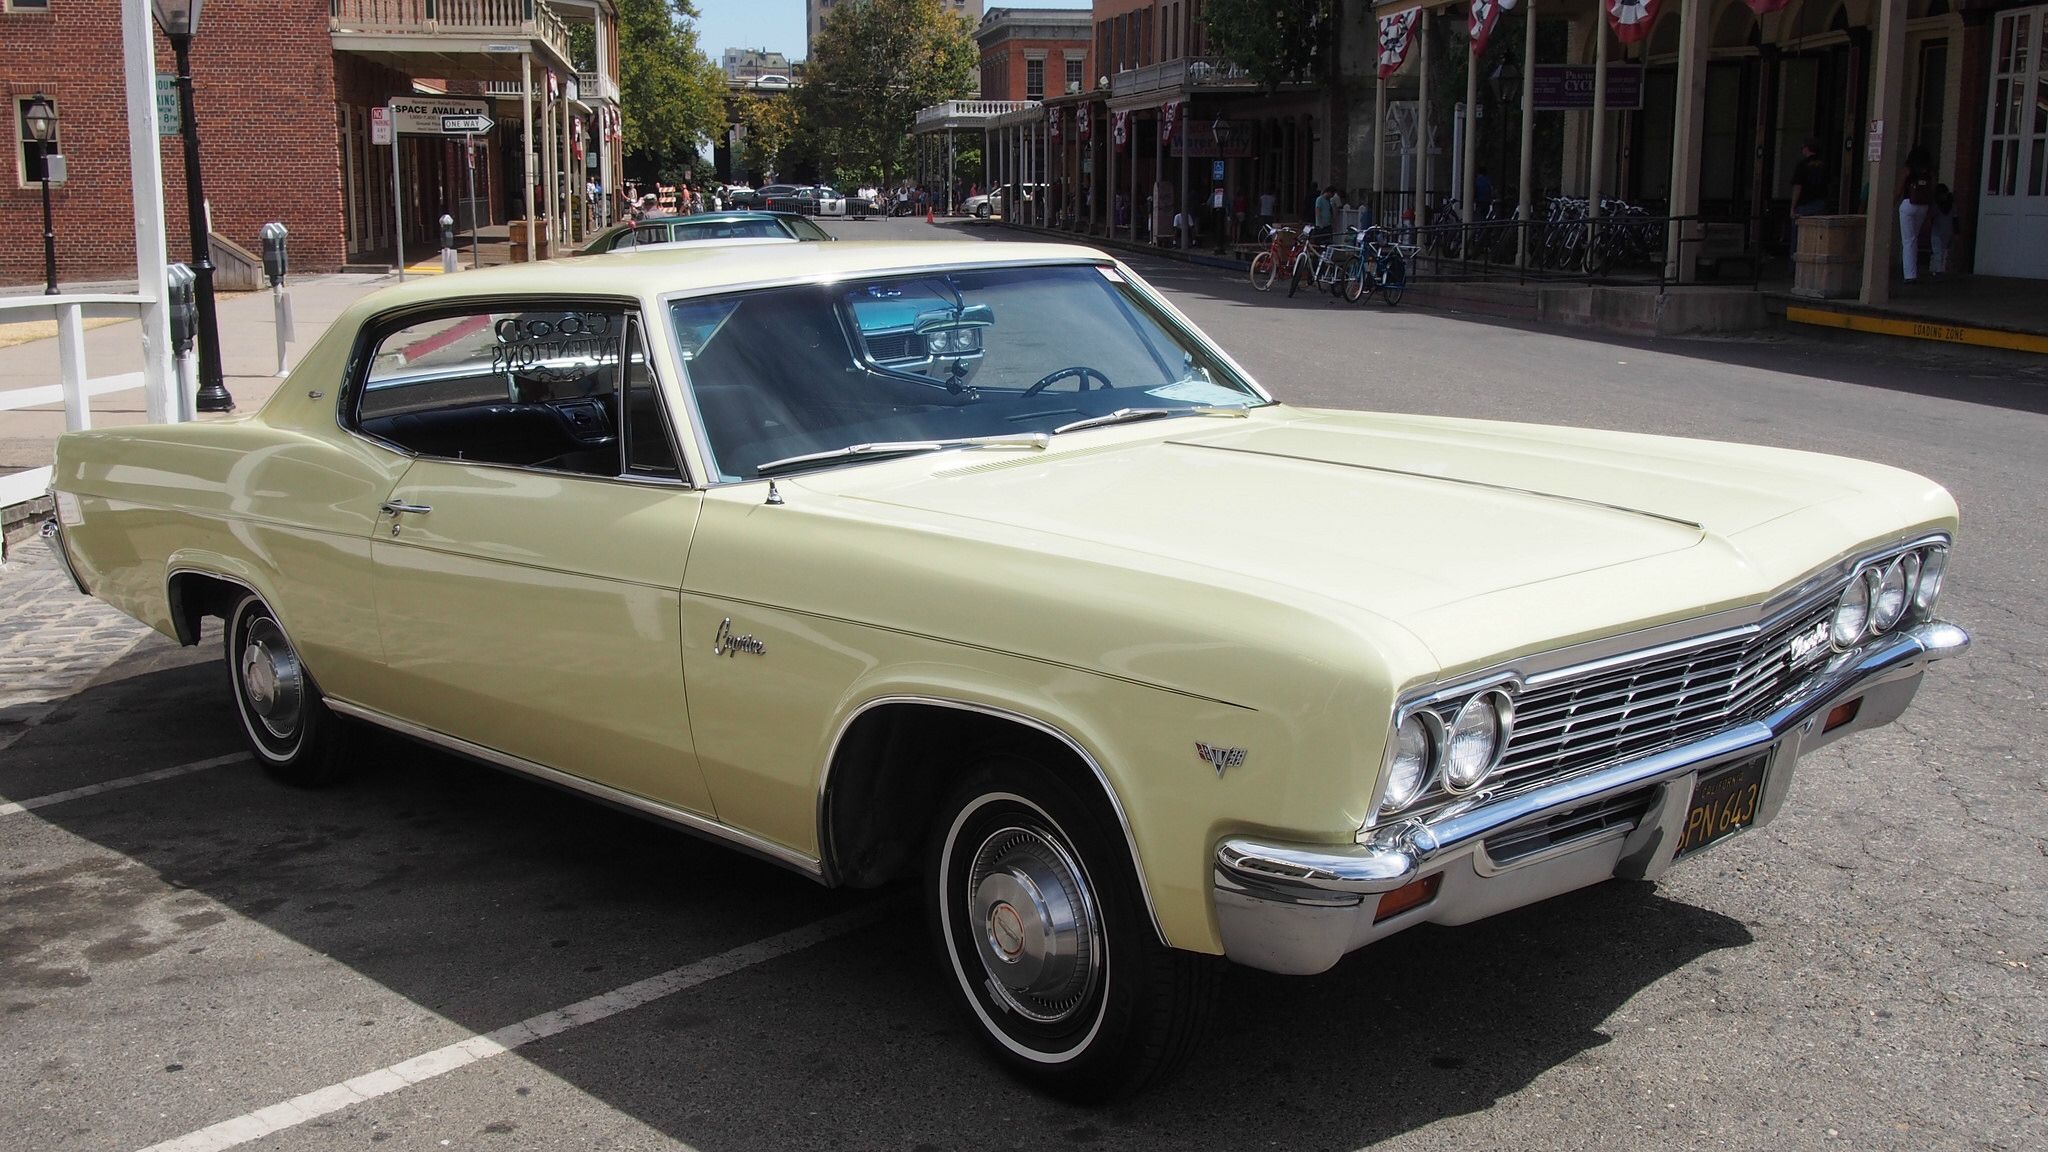 1966 Chevrolet Caprice Hardtiop 'SPN 643' 2 (With images